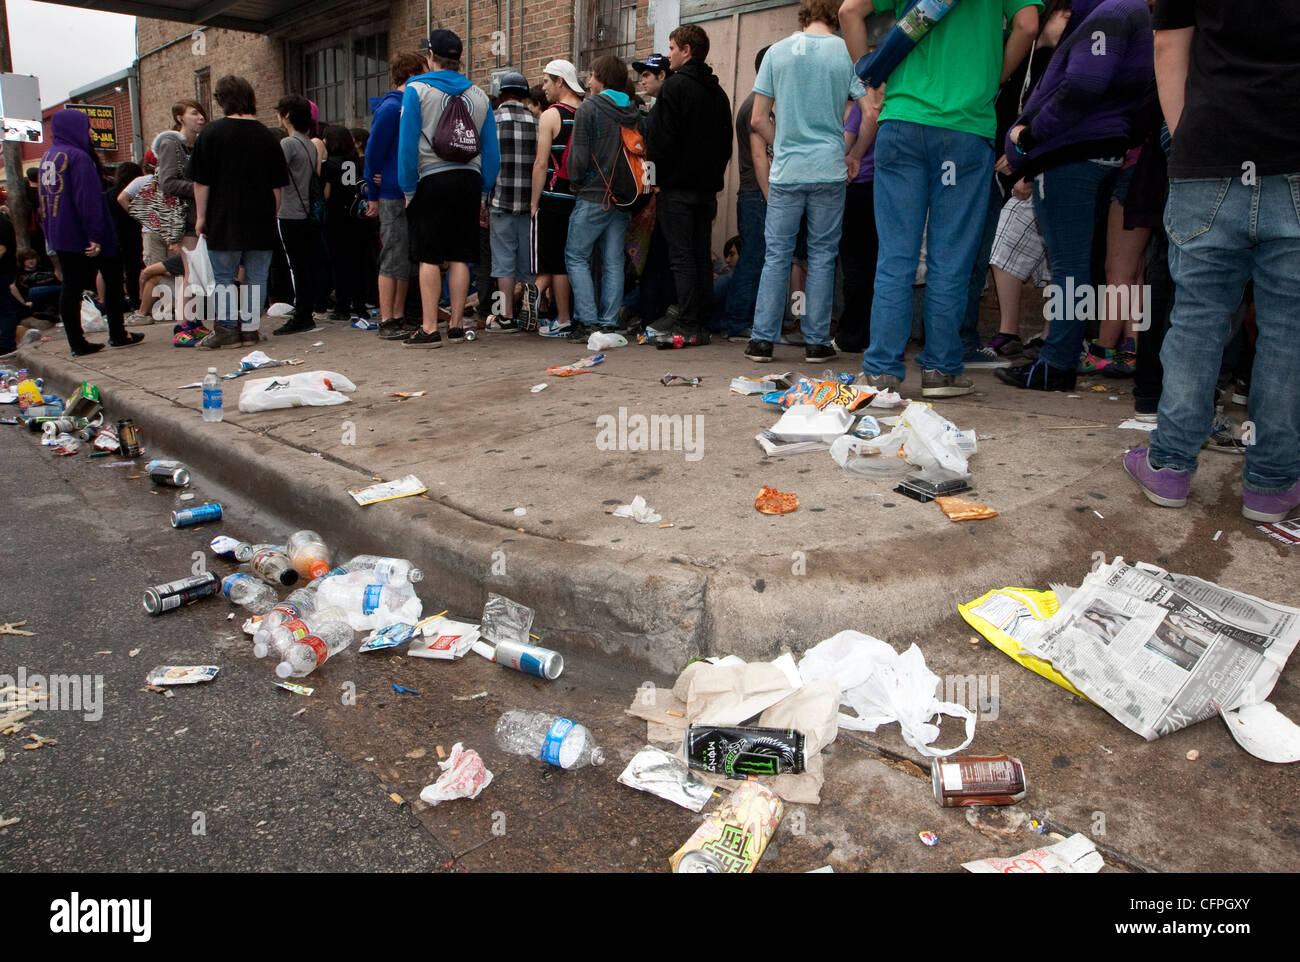 Piles of garbage left on street by attendees of SXSW Music Festival in Austin, Texas which brings in thousands of - Stock Image